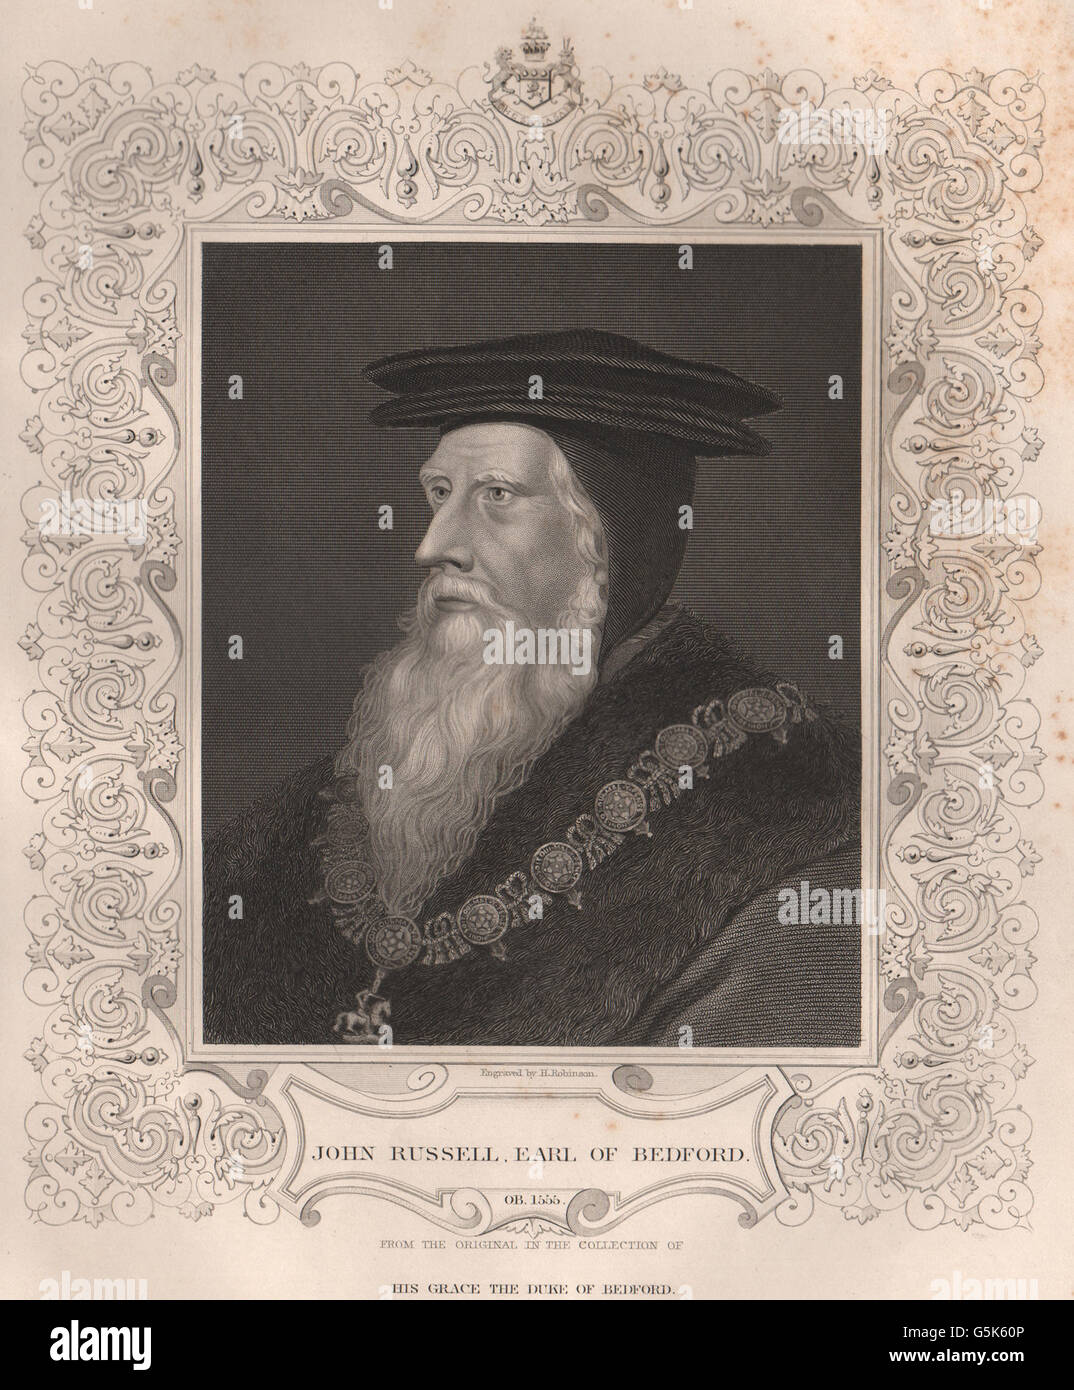 BRITISH HISTORY: John Russell, Earl Of Bedford. TALLIS, antique print 1853 - Stock Image